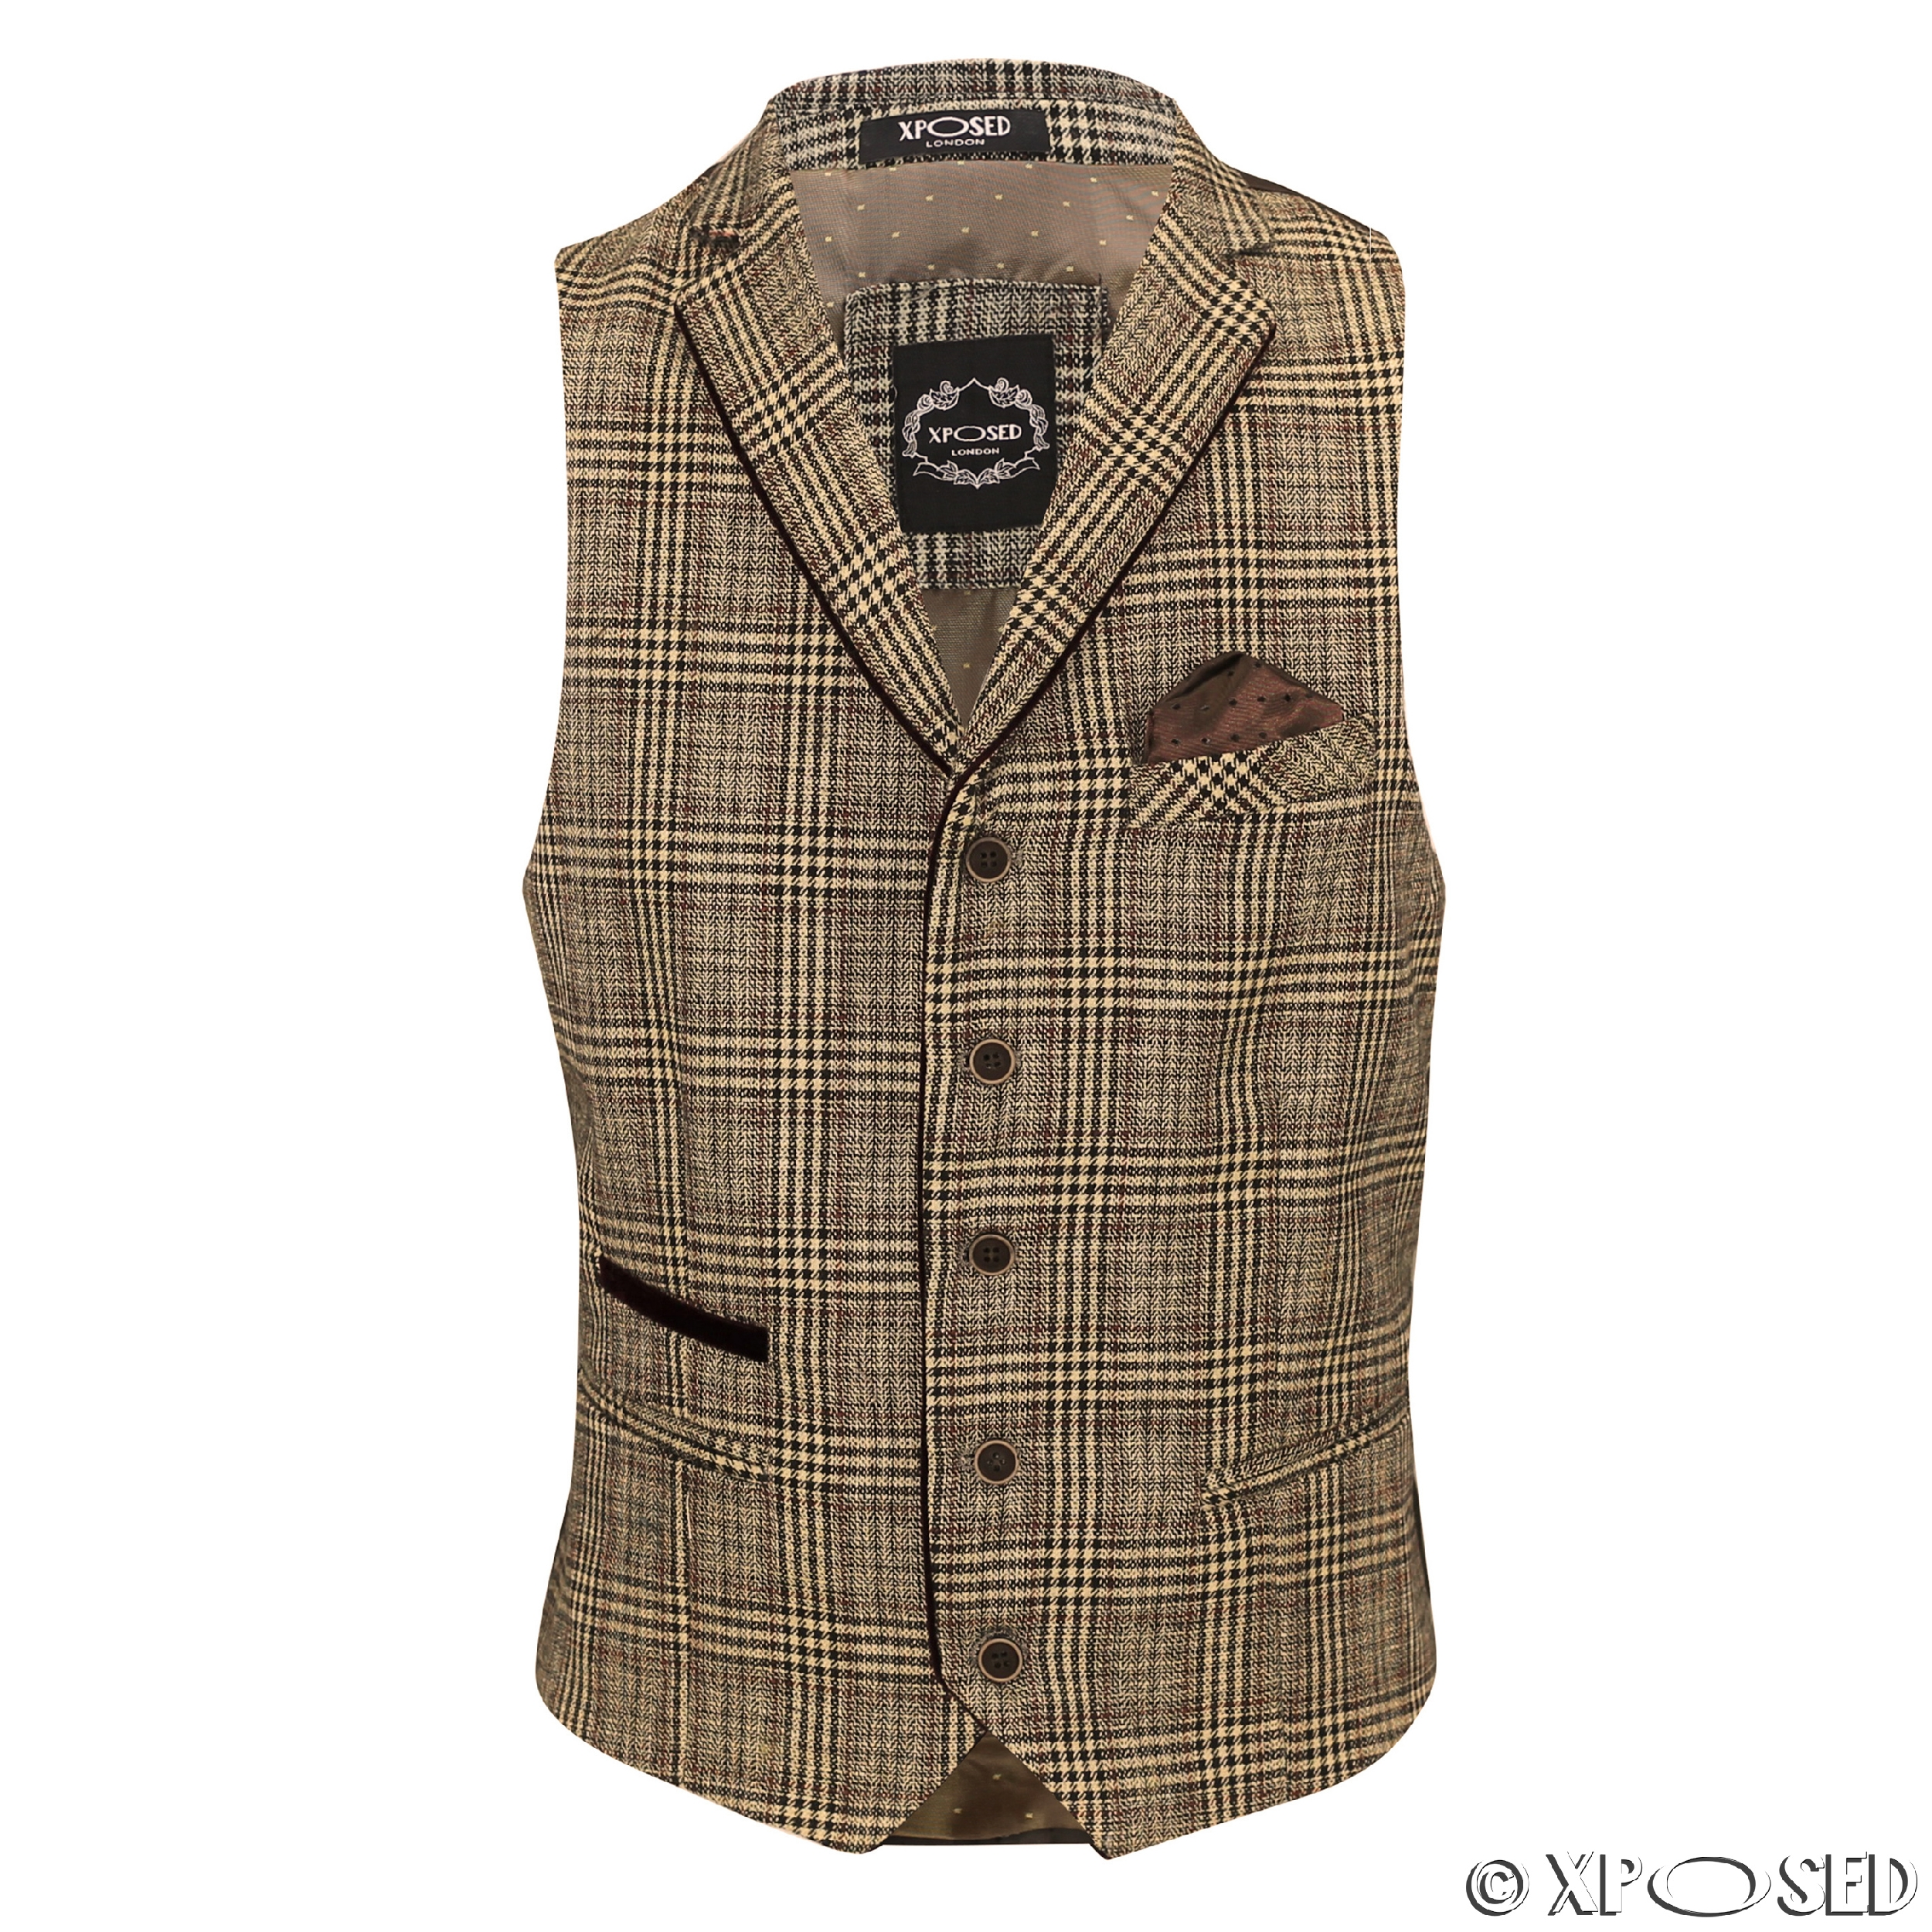 Buy the ultra-light waterproof jackets, tweed blazer, tweed suits, tweed shop UK from our magnificent collection online. Offering a great discount!